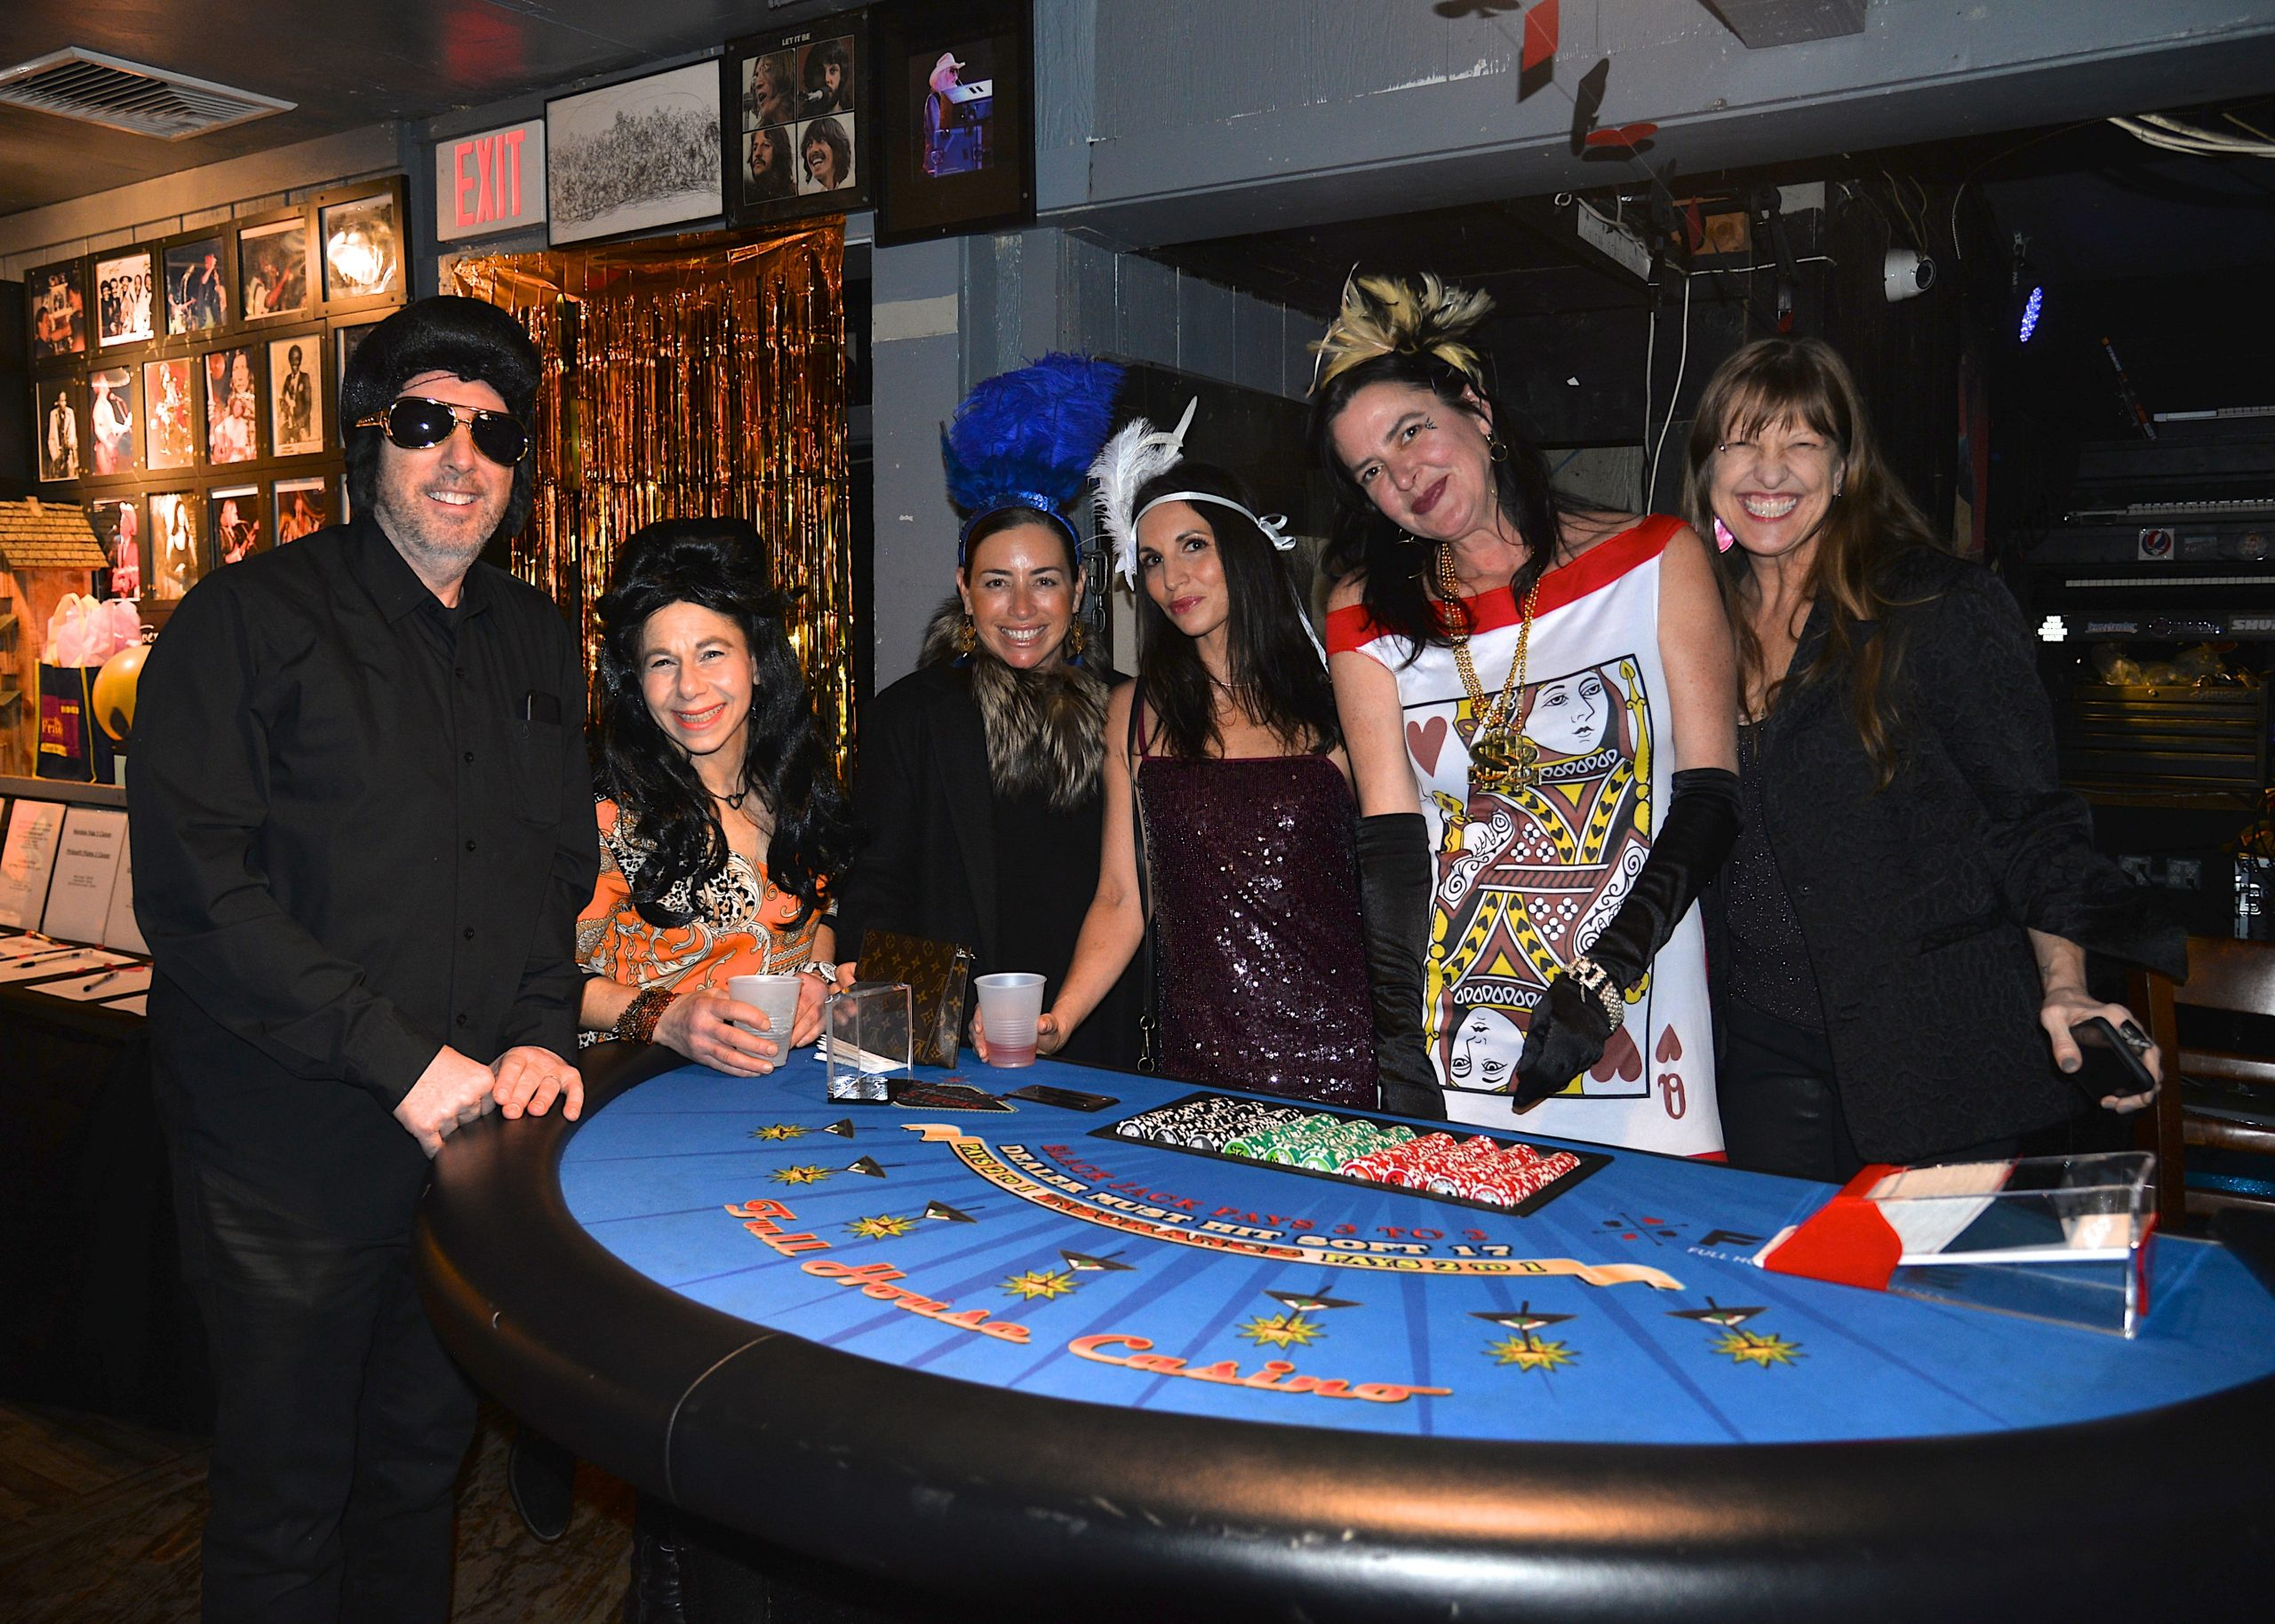 A Casino Night fundaiser for the Amagansett School took place at the Amagansett School last week, and, from left, Steven Ball, Charlotte Sasso, Ashley Blackburn, Janice Hummel, Jenny Brew and Jamie Kohl, were there. KYRIL BROMLEY